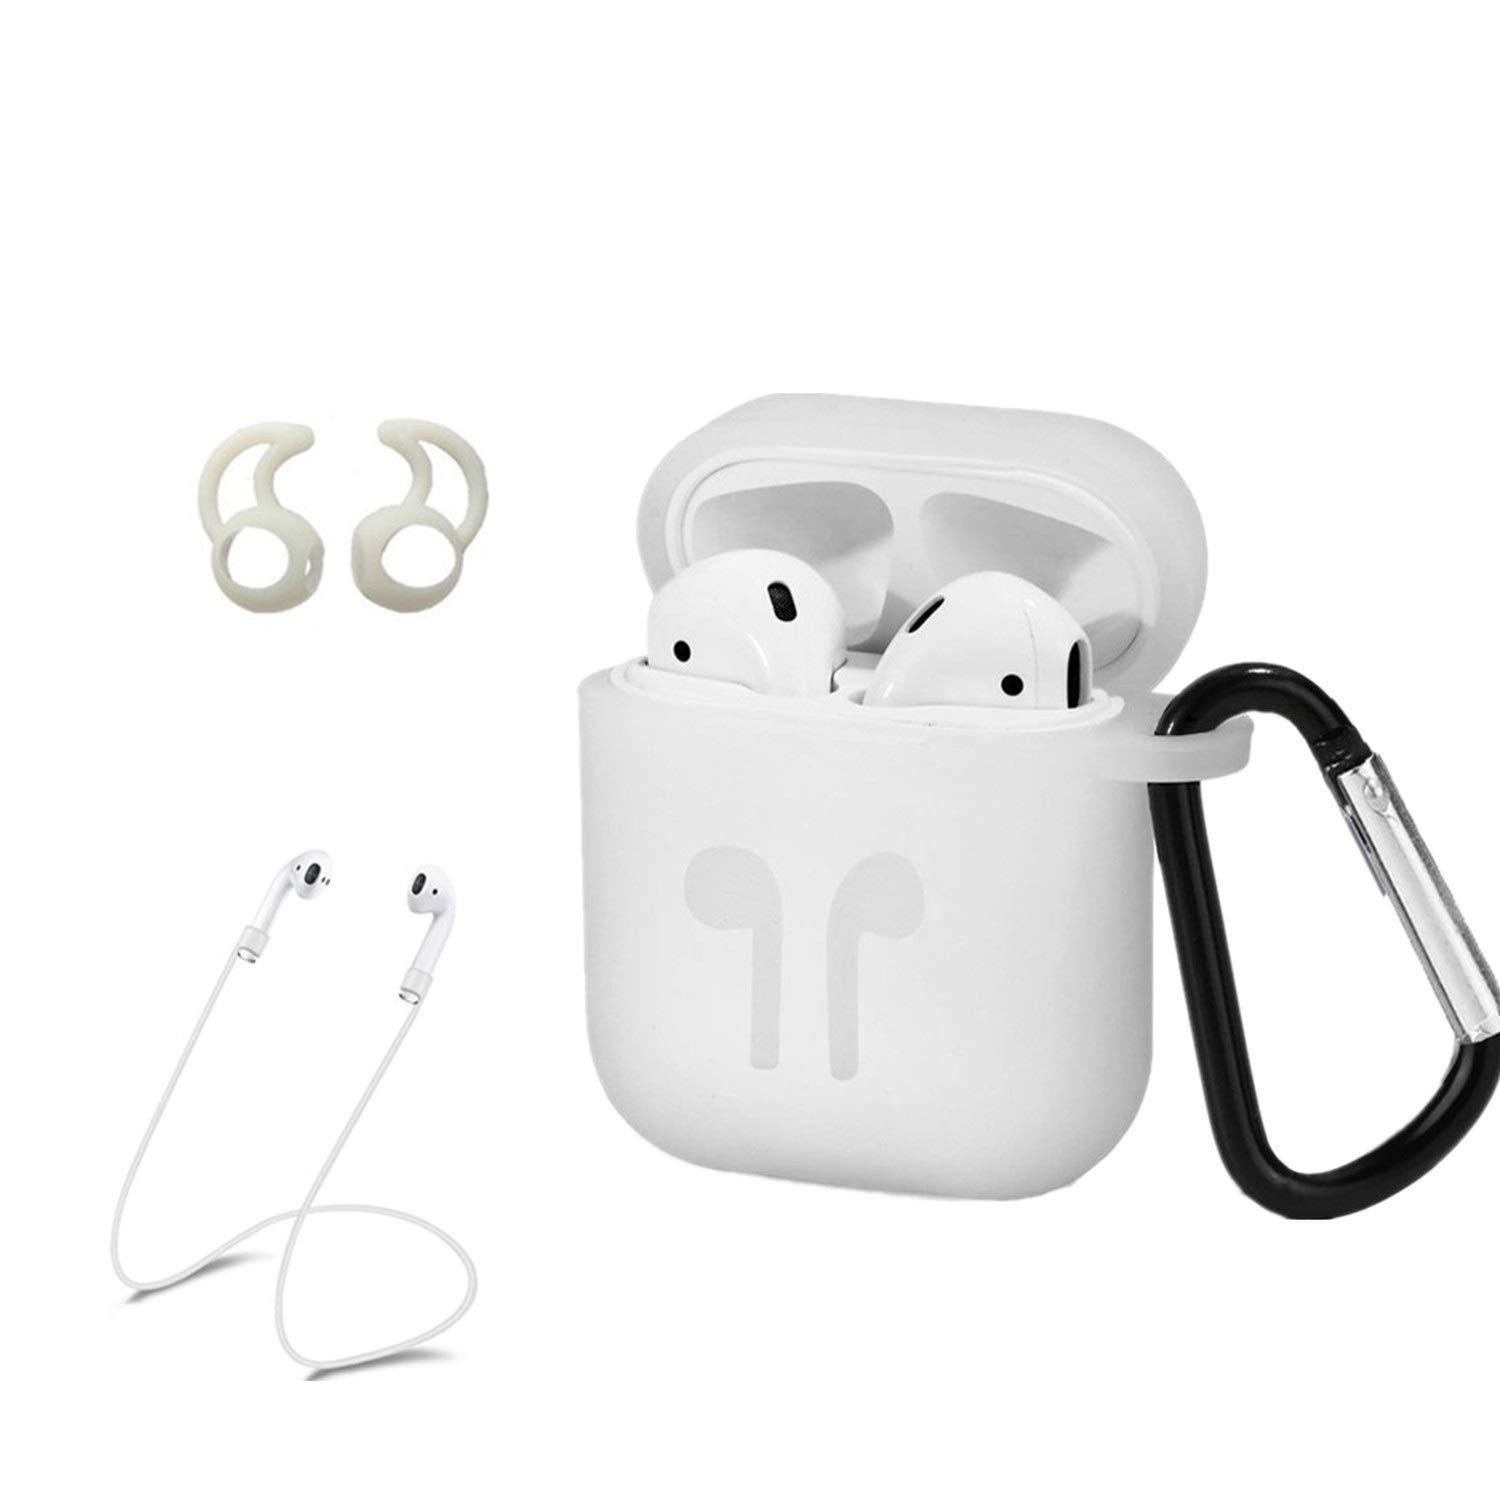 10a8da51852 AC Parts AirPods Case Accessories Kits Protective Silicone Cover and Skin 2  Ear Hook Grips, 2 Anti-Loss Staps, 1 Earphone Bag Apple Airpods Charging  Case ...